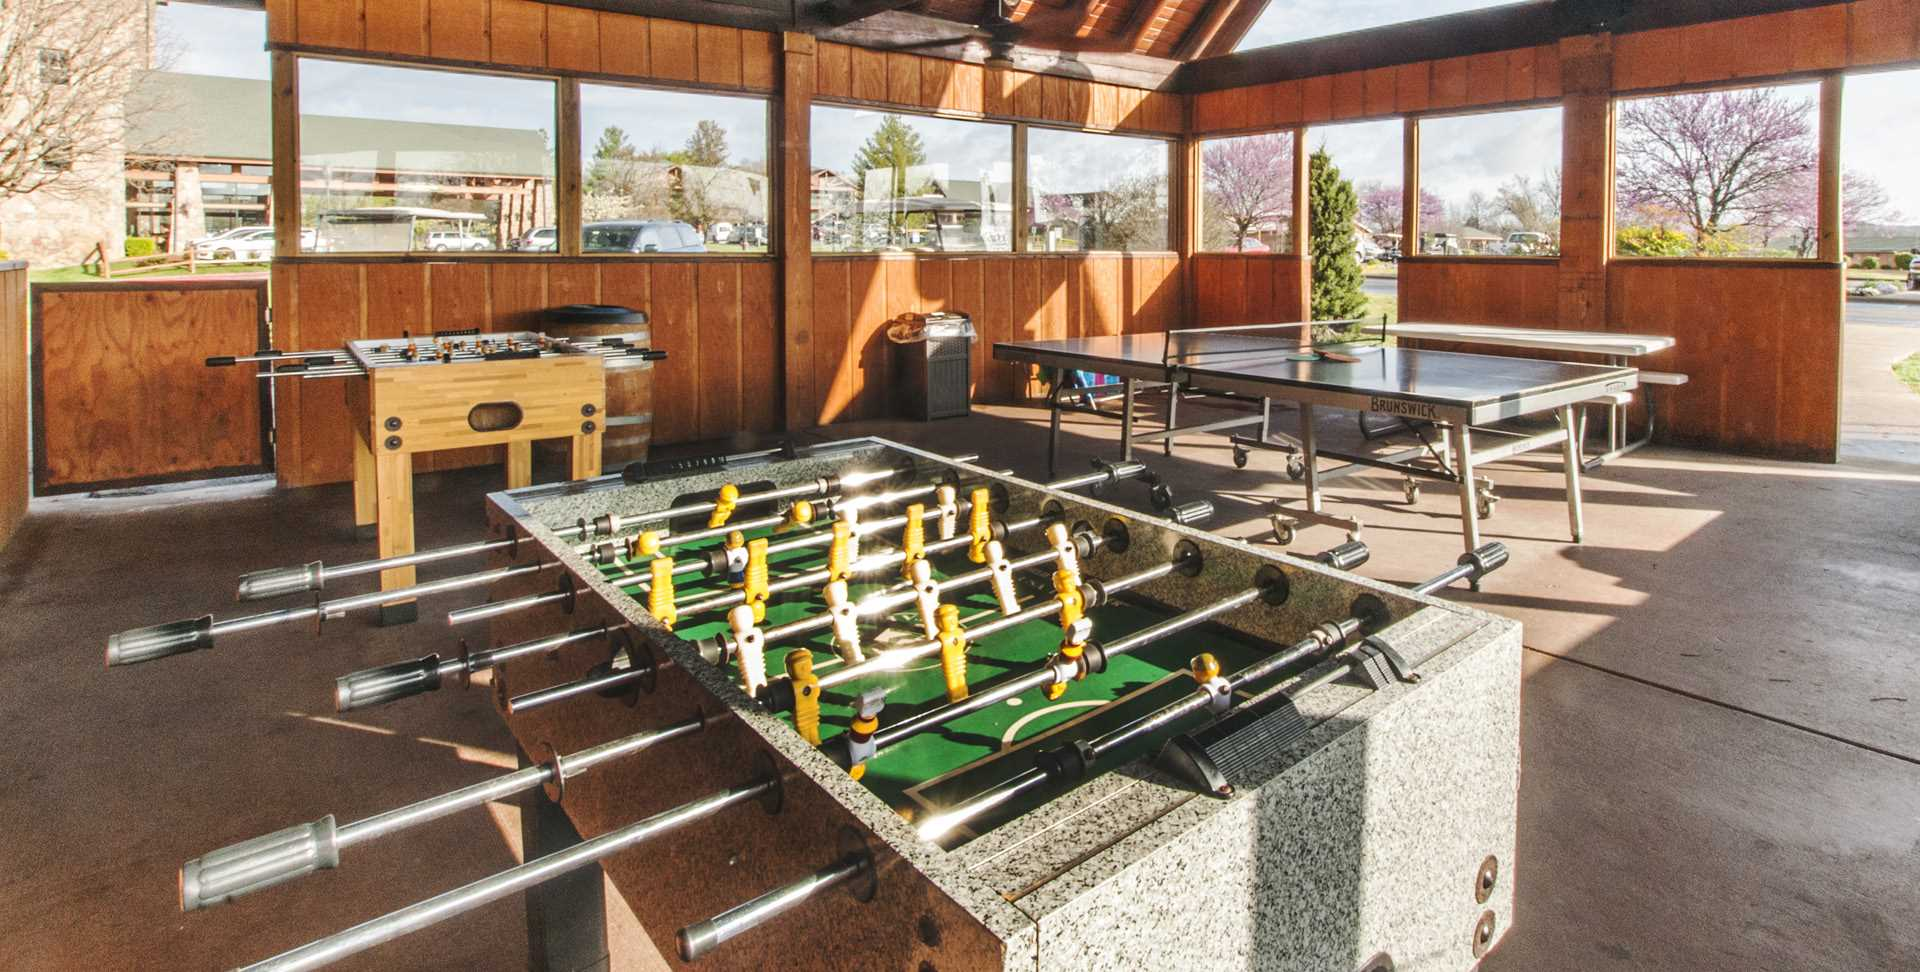 Game rooms outside and indoors.